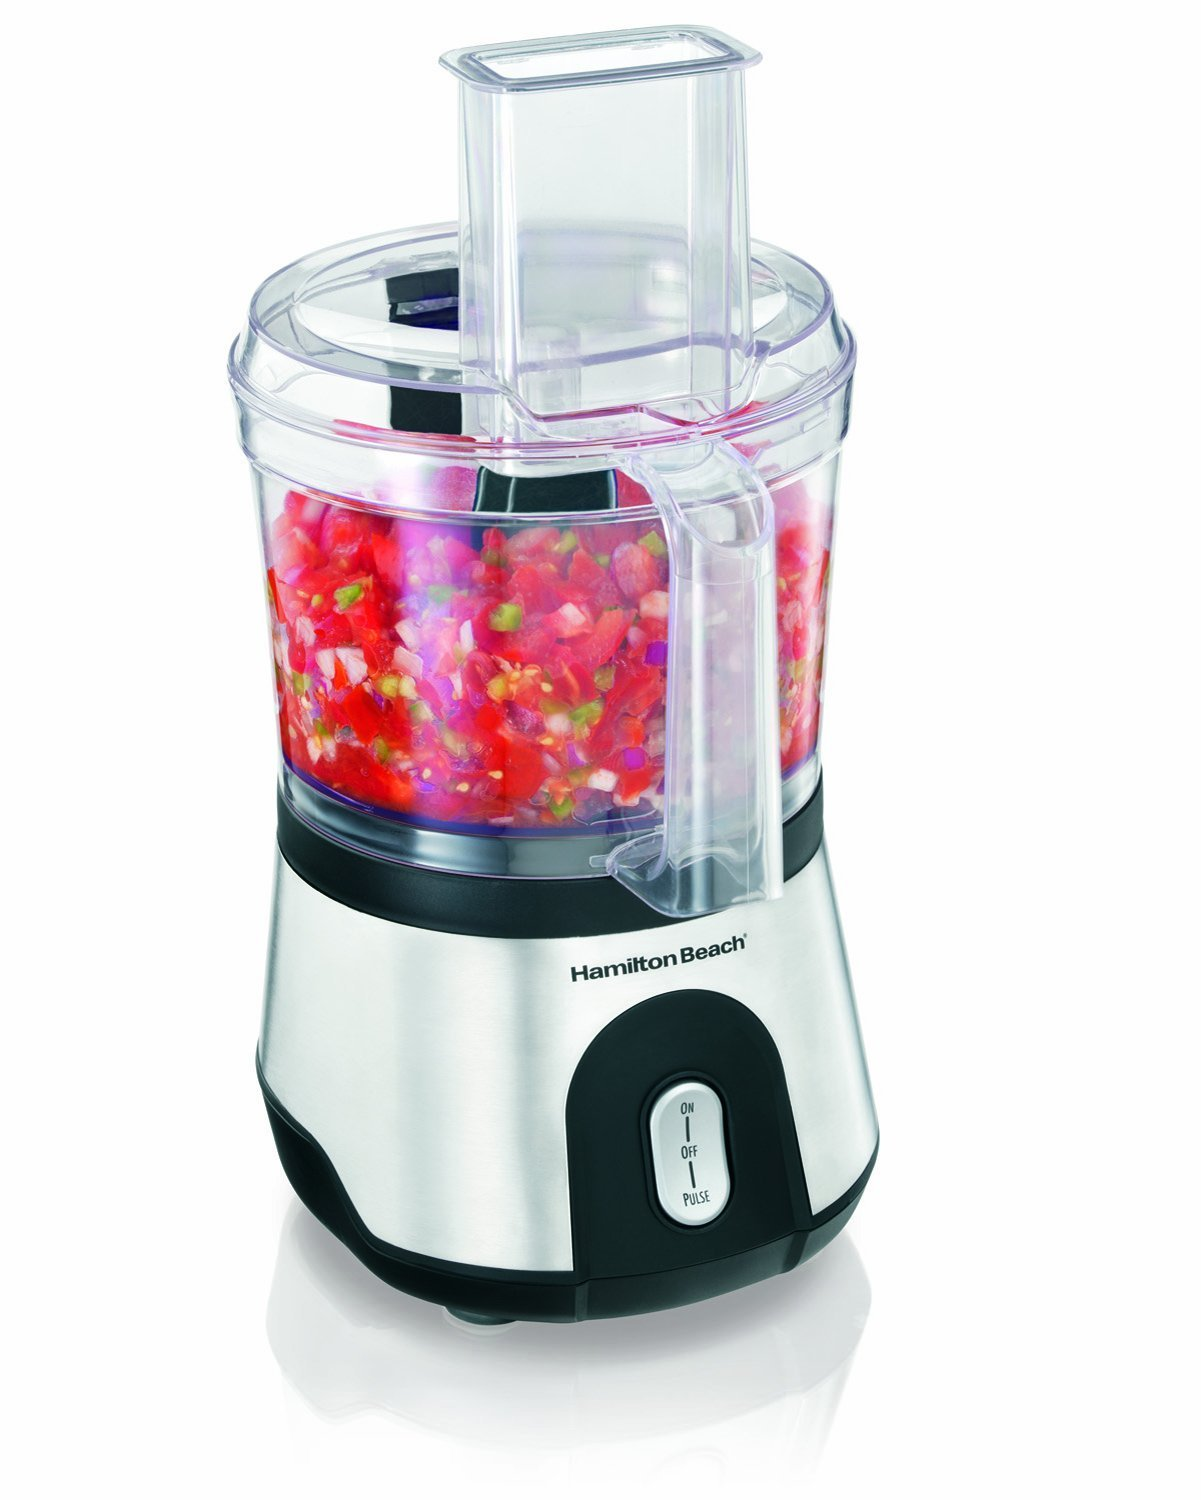 Making Dough In Food Processor Or Mixer